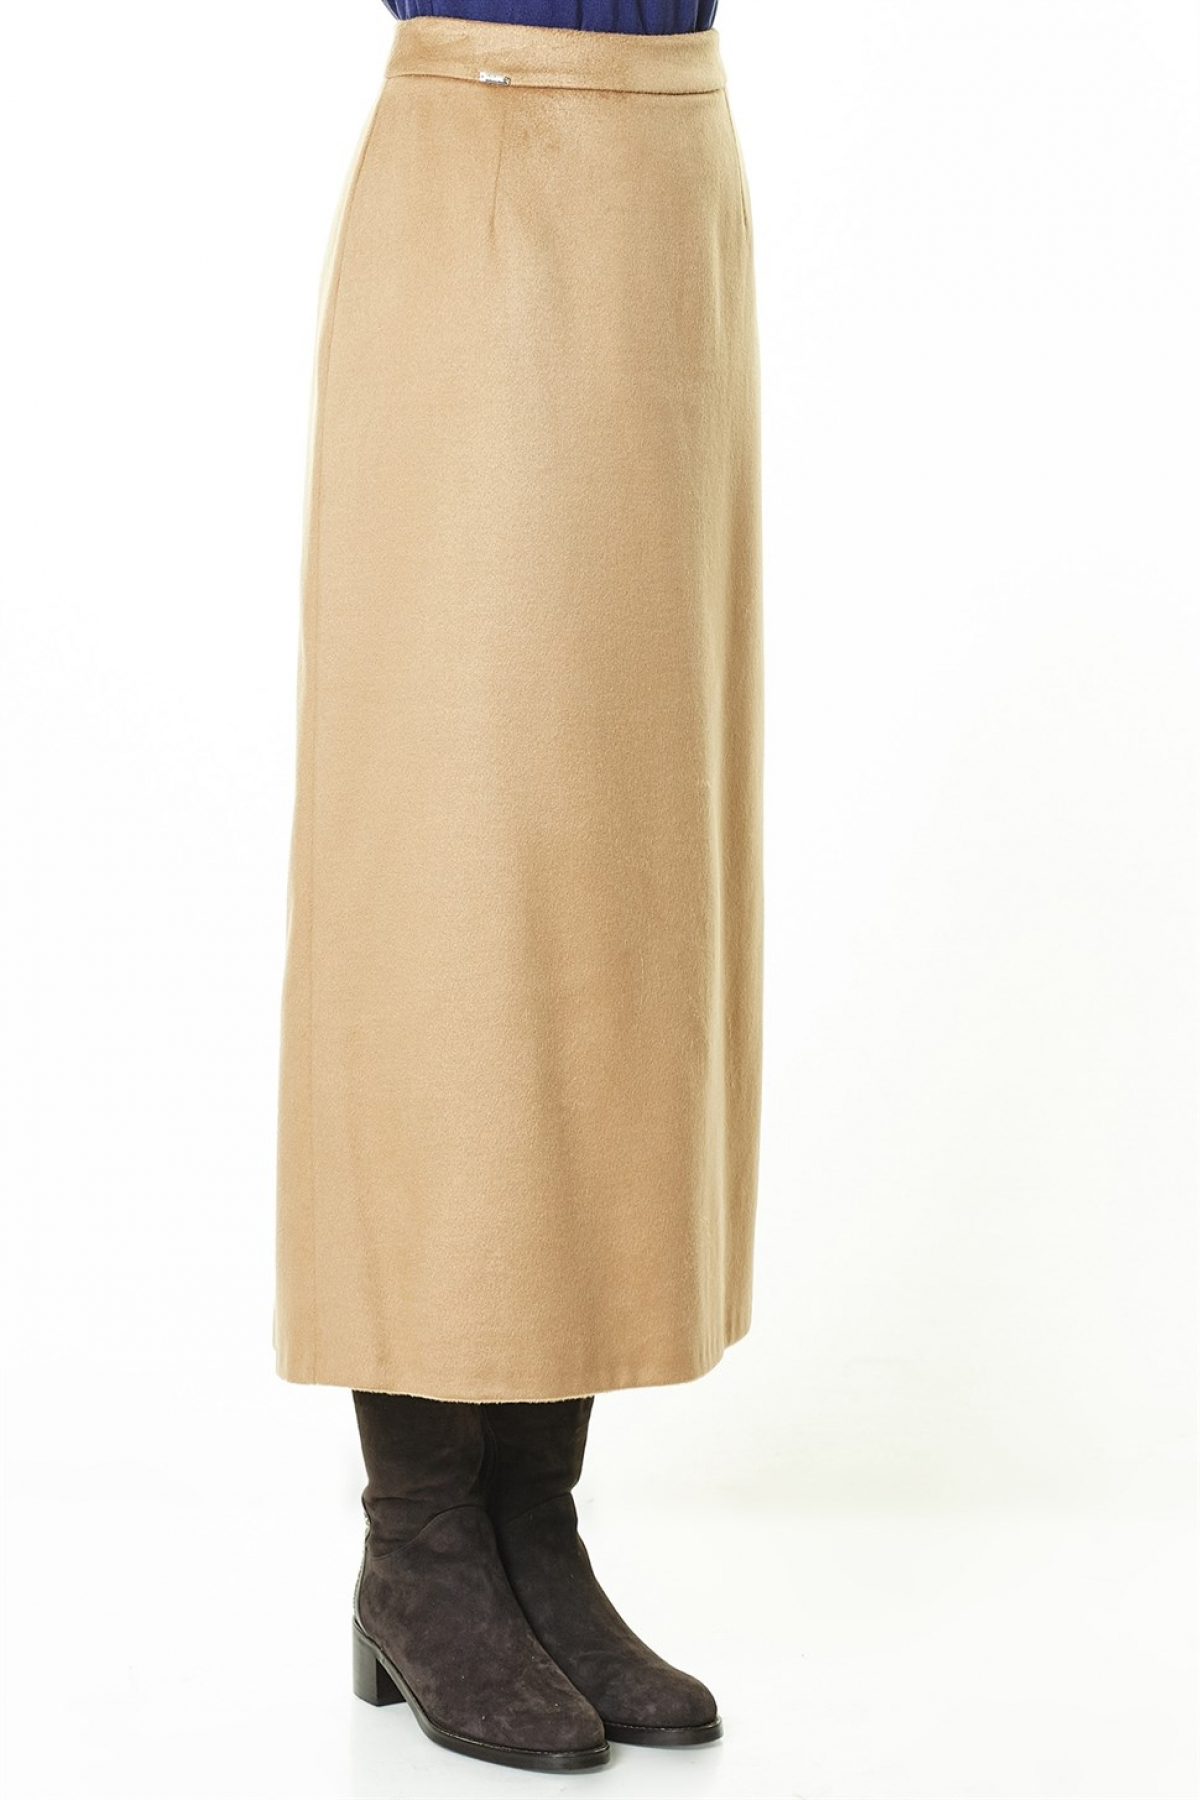 Armine - Women's Skirt -  Brown